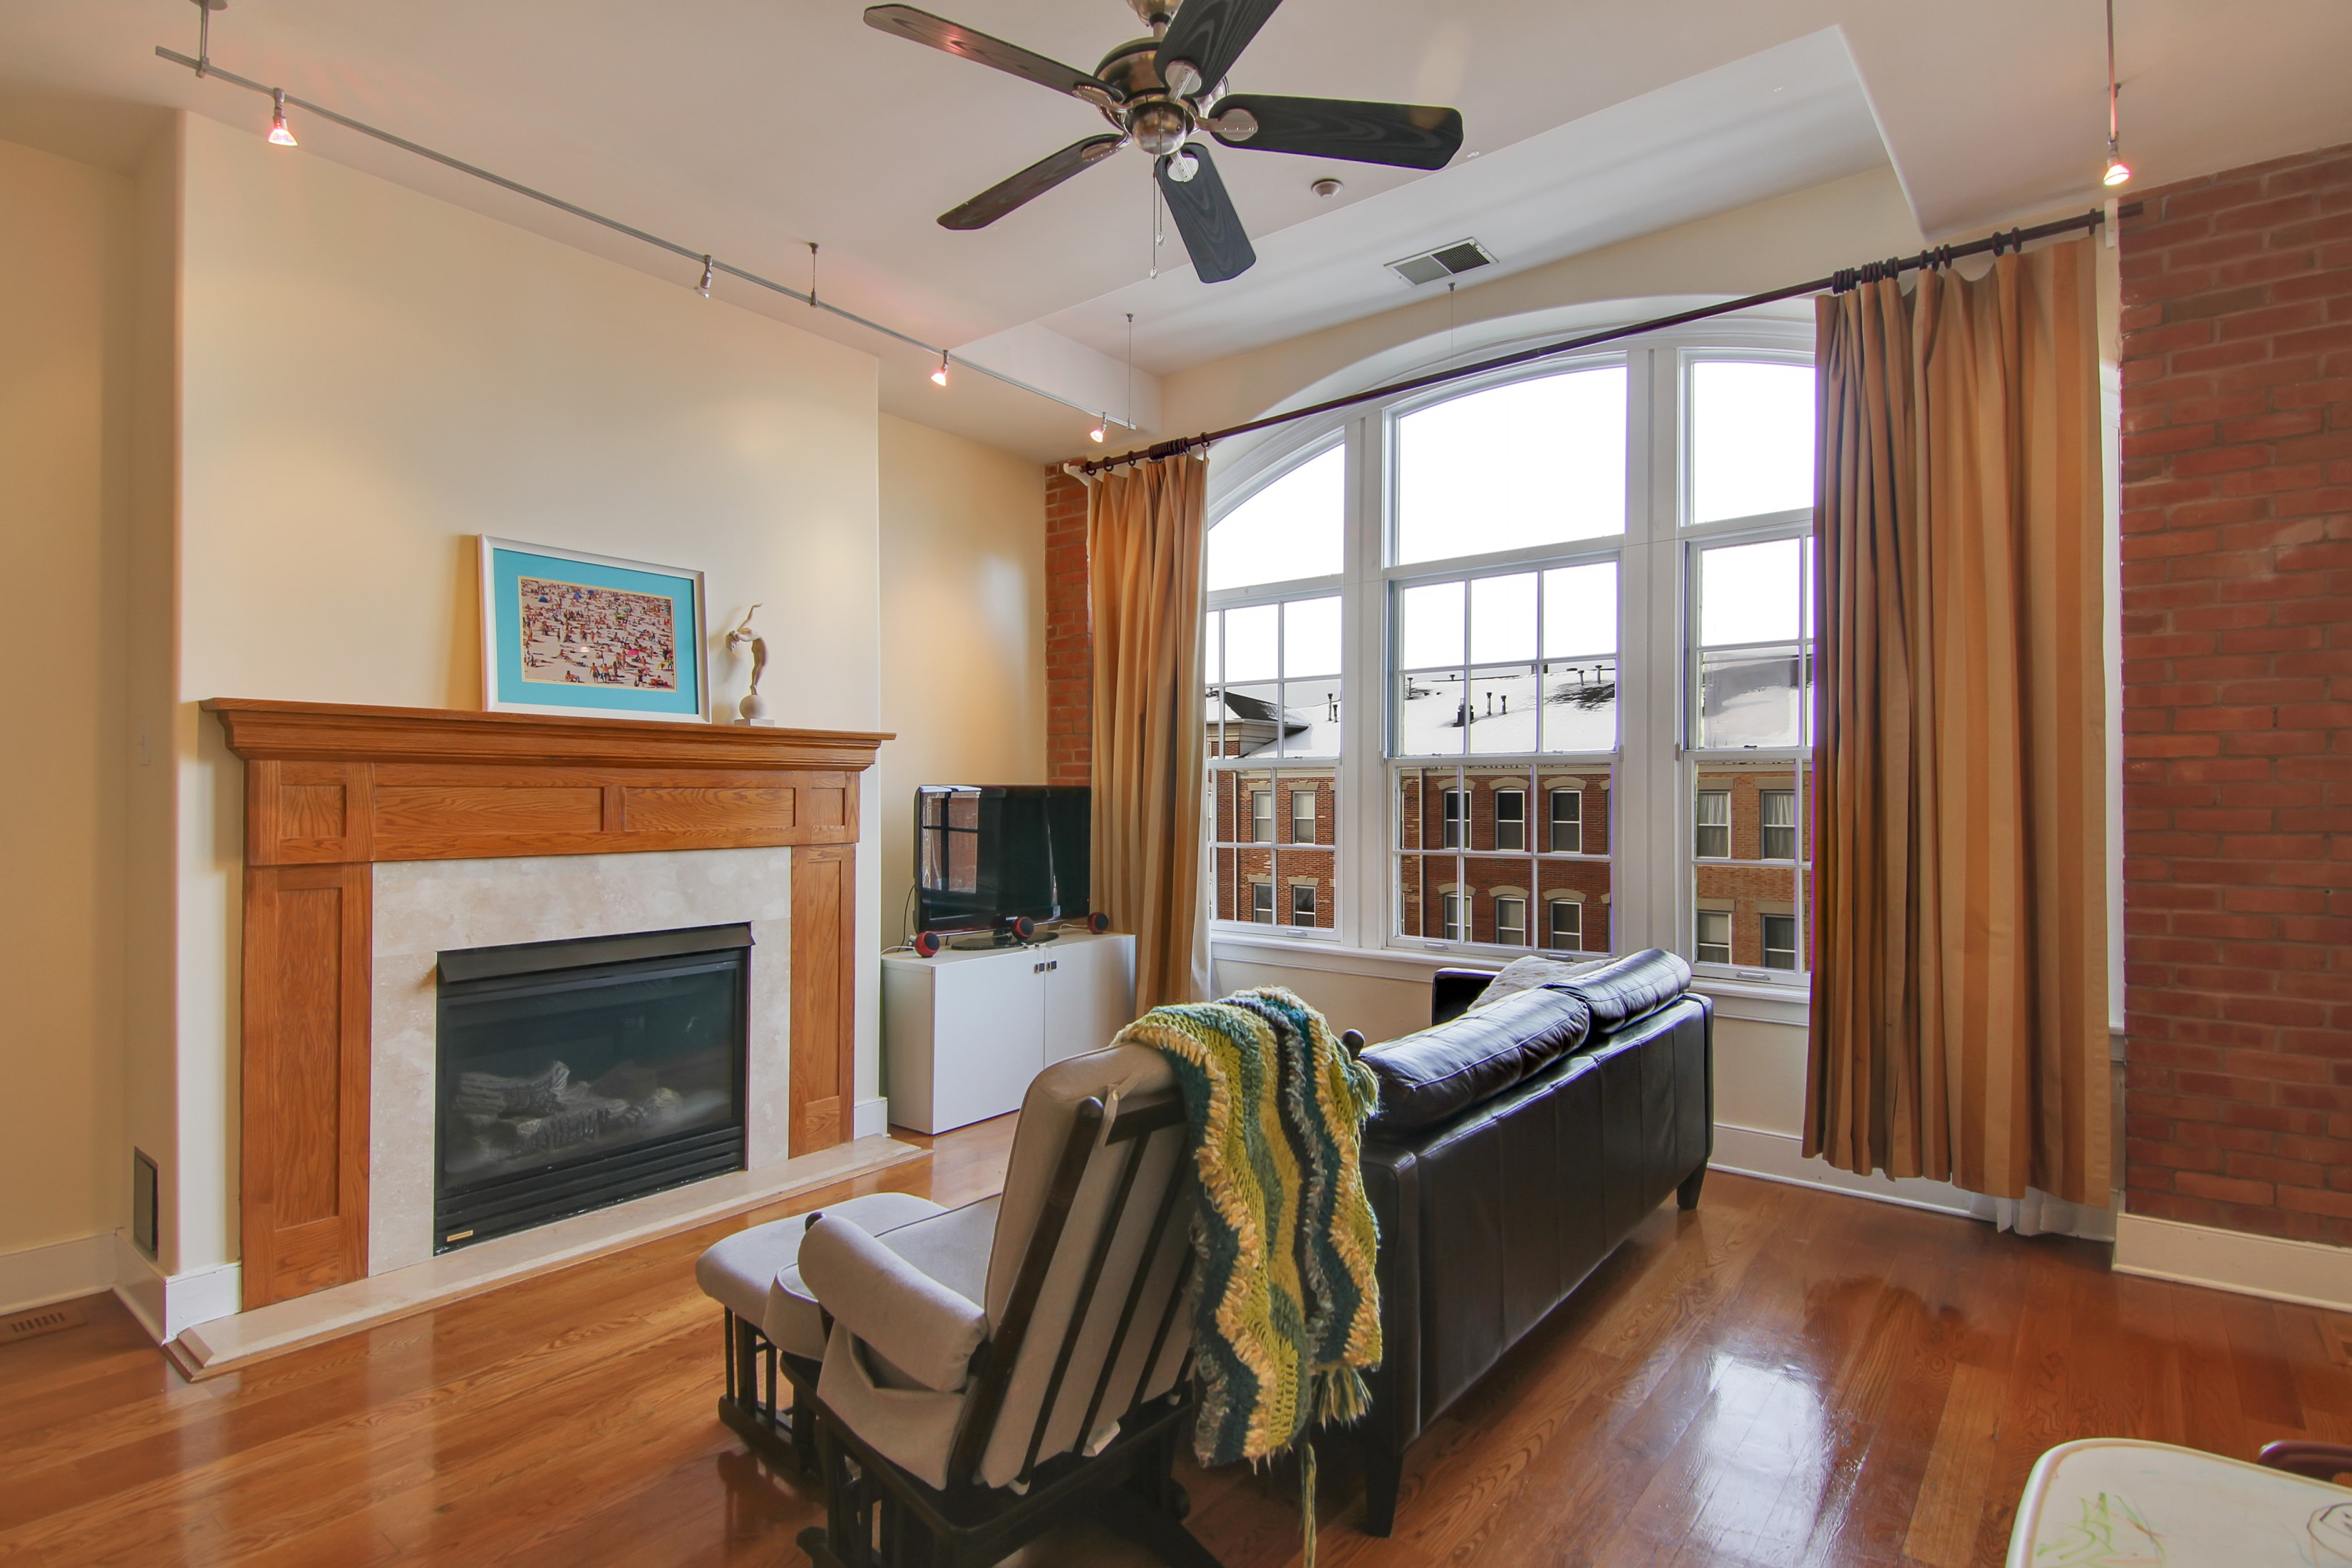 """Condominium for Rent at """"Your Passport to Luxury @ Sugar House! Stunning 2BR2Bth w Parking"""" 174 Washington St #4E Jersey City, 07302 United States"""